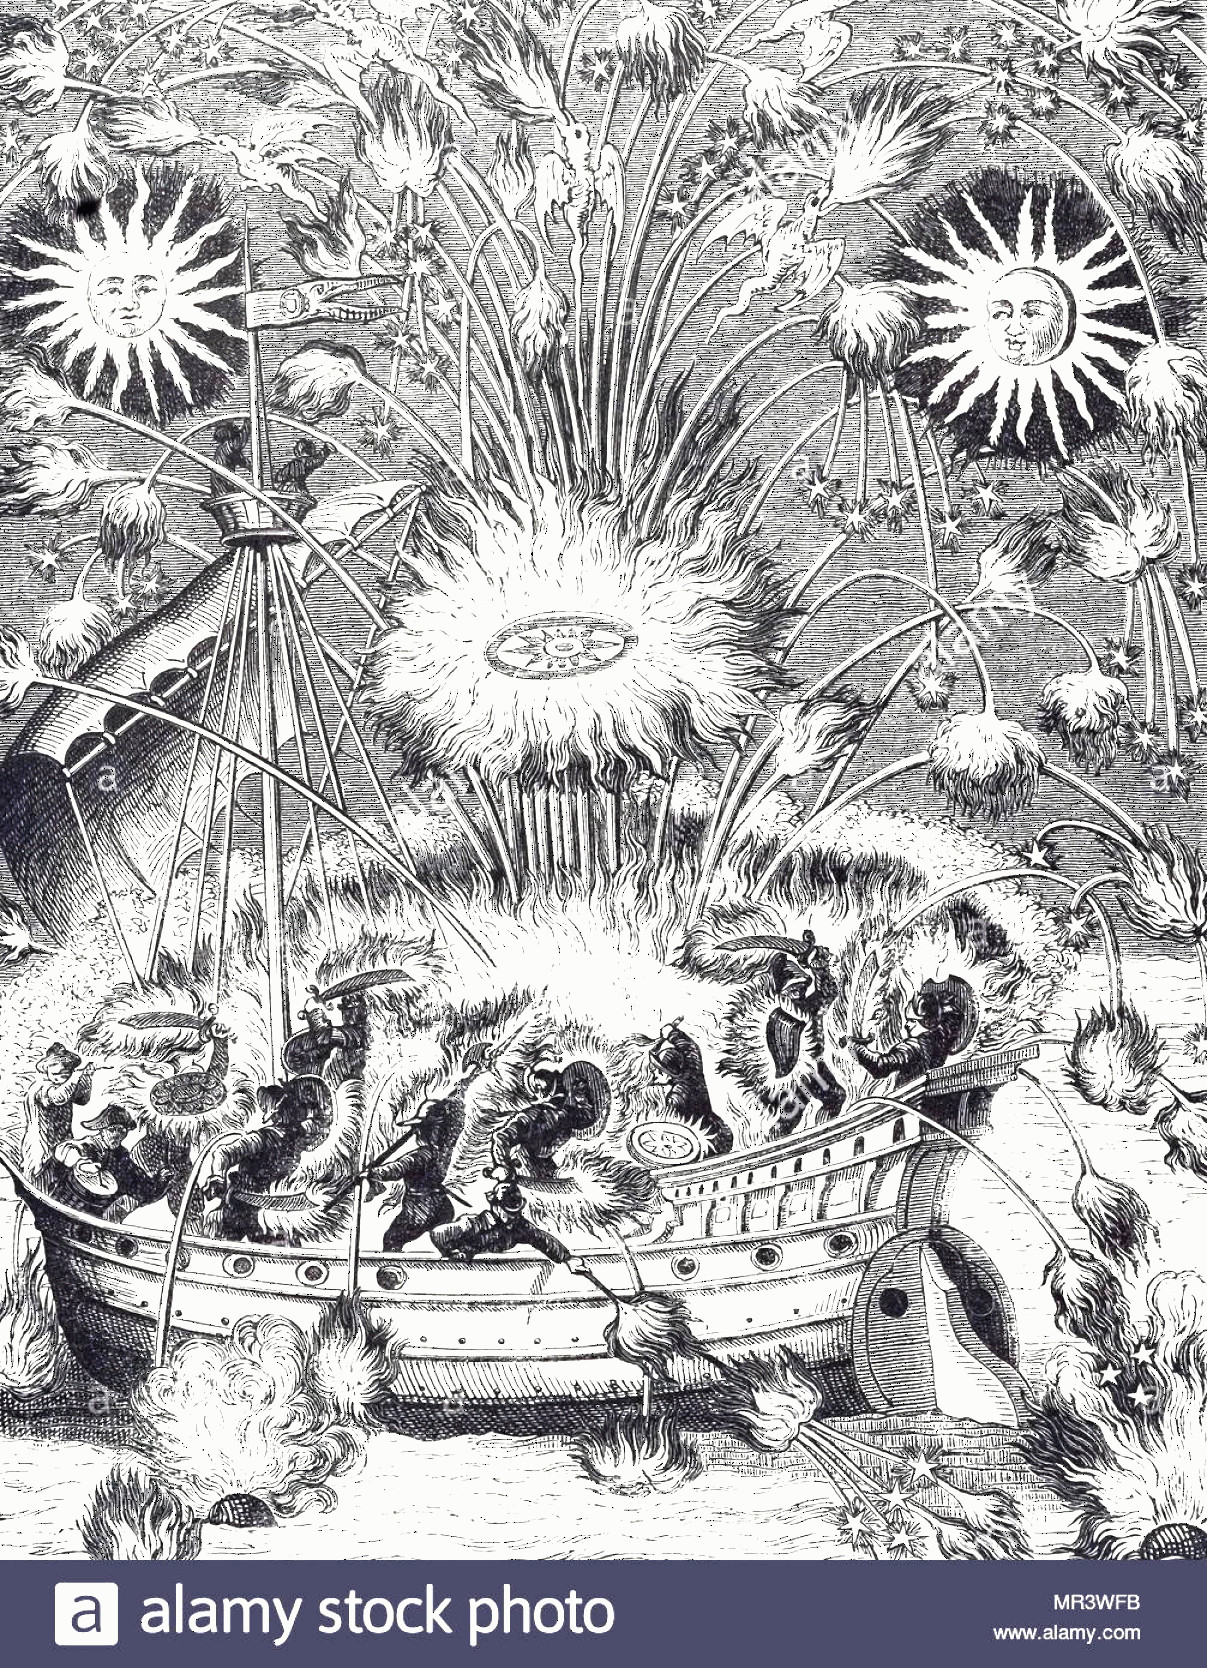 Firework Engraving Vector: Engraving Depicting A Firework Display In Imitation Of A Naval Battle Dated Th Century Image